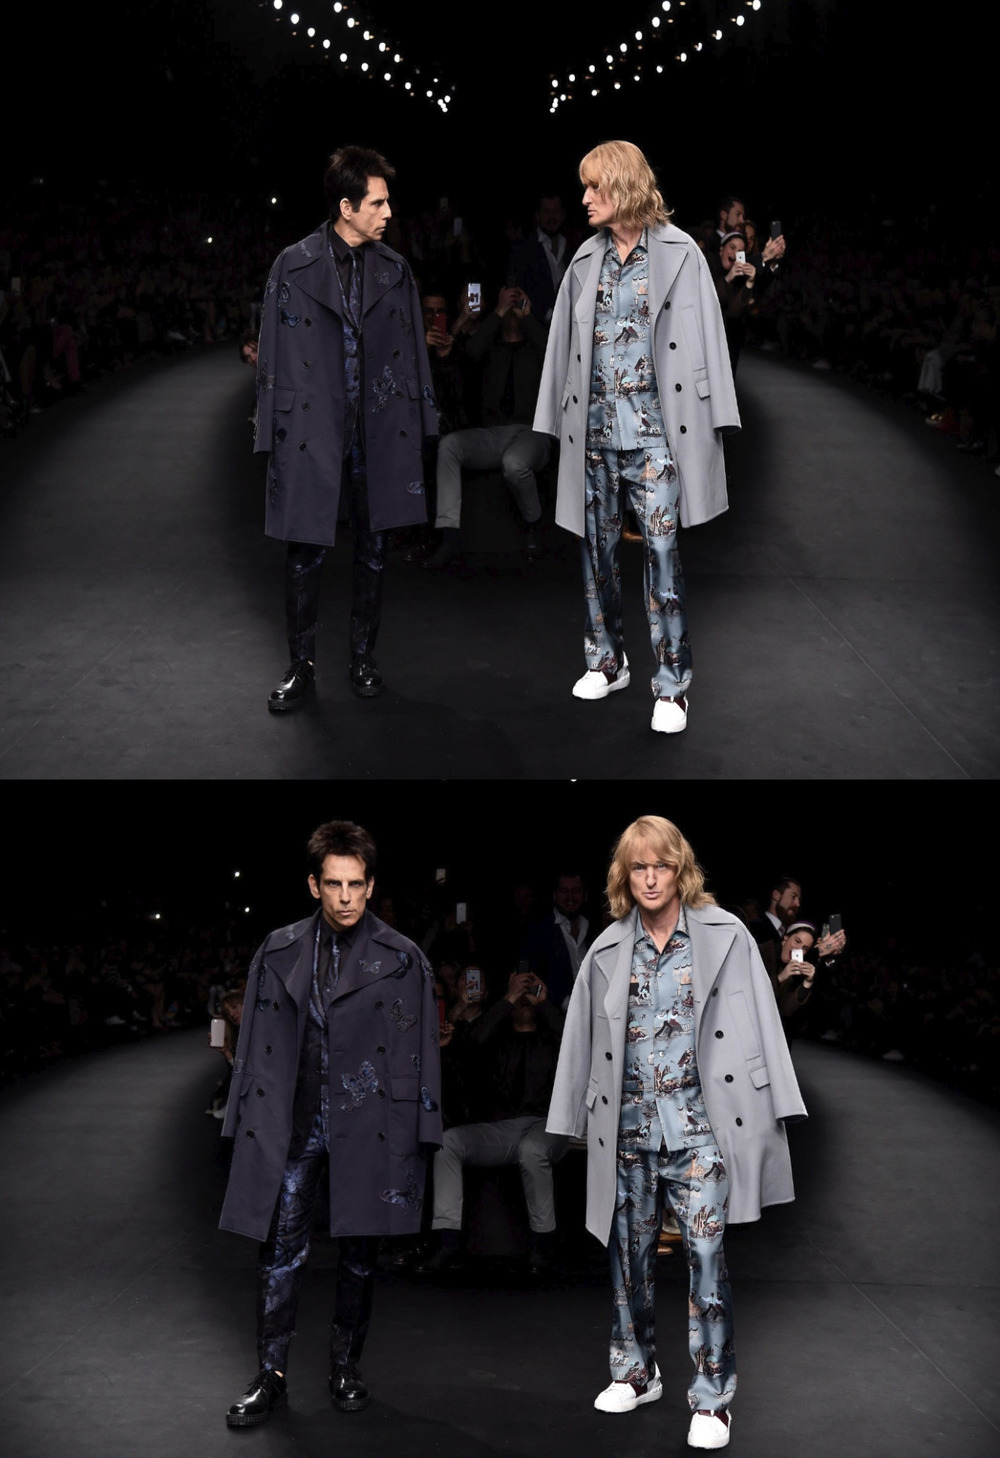 vogue: Blue Steel is back! Take an exclusive look at Ben Stiller and Owen Wilson in Zoolander character backstage at Valentino: http://vogue.cm/1GCMQ2G Photographed by Kevin Tachman